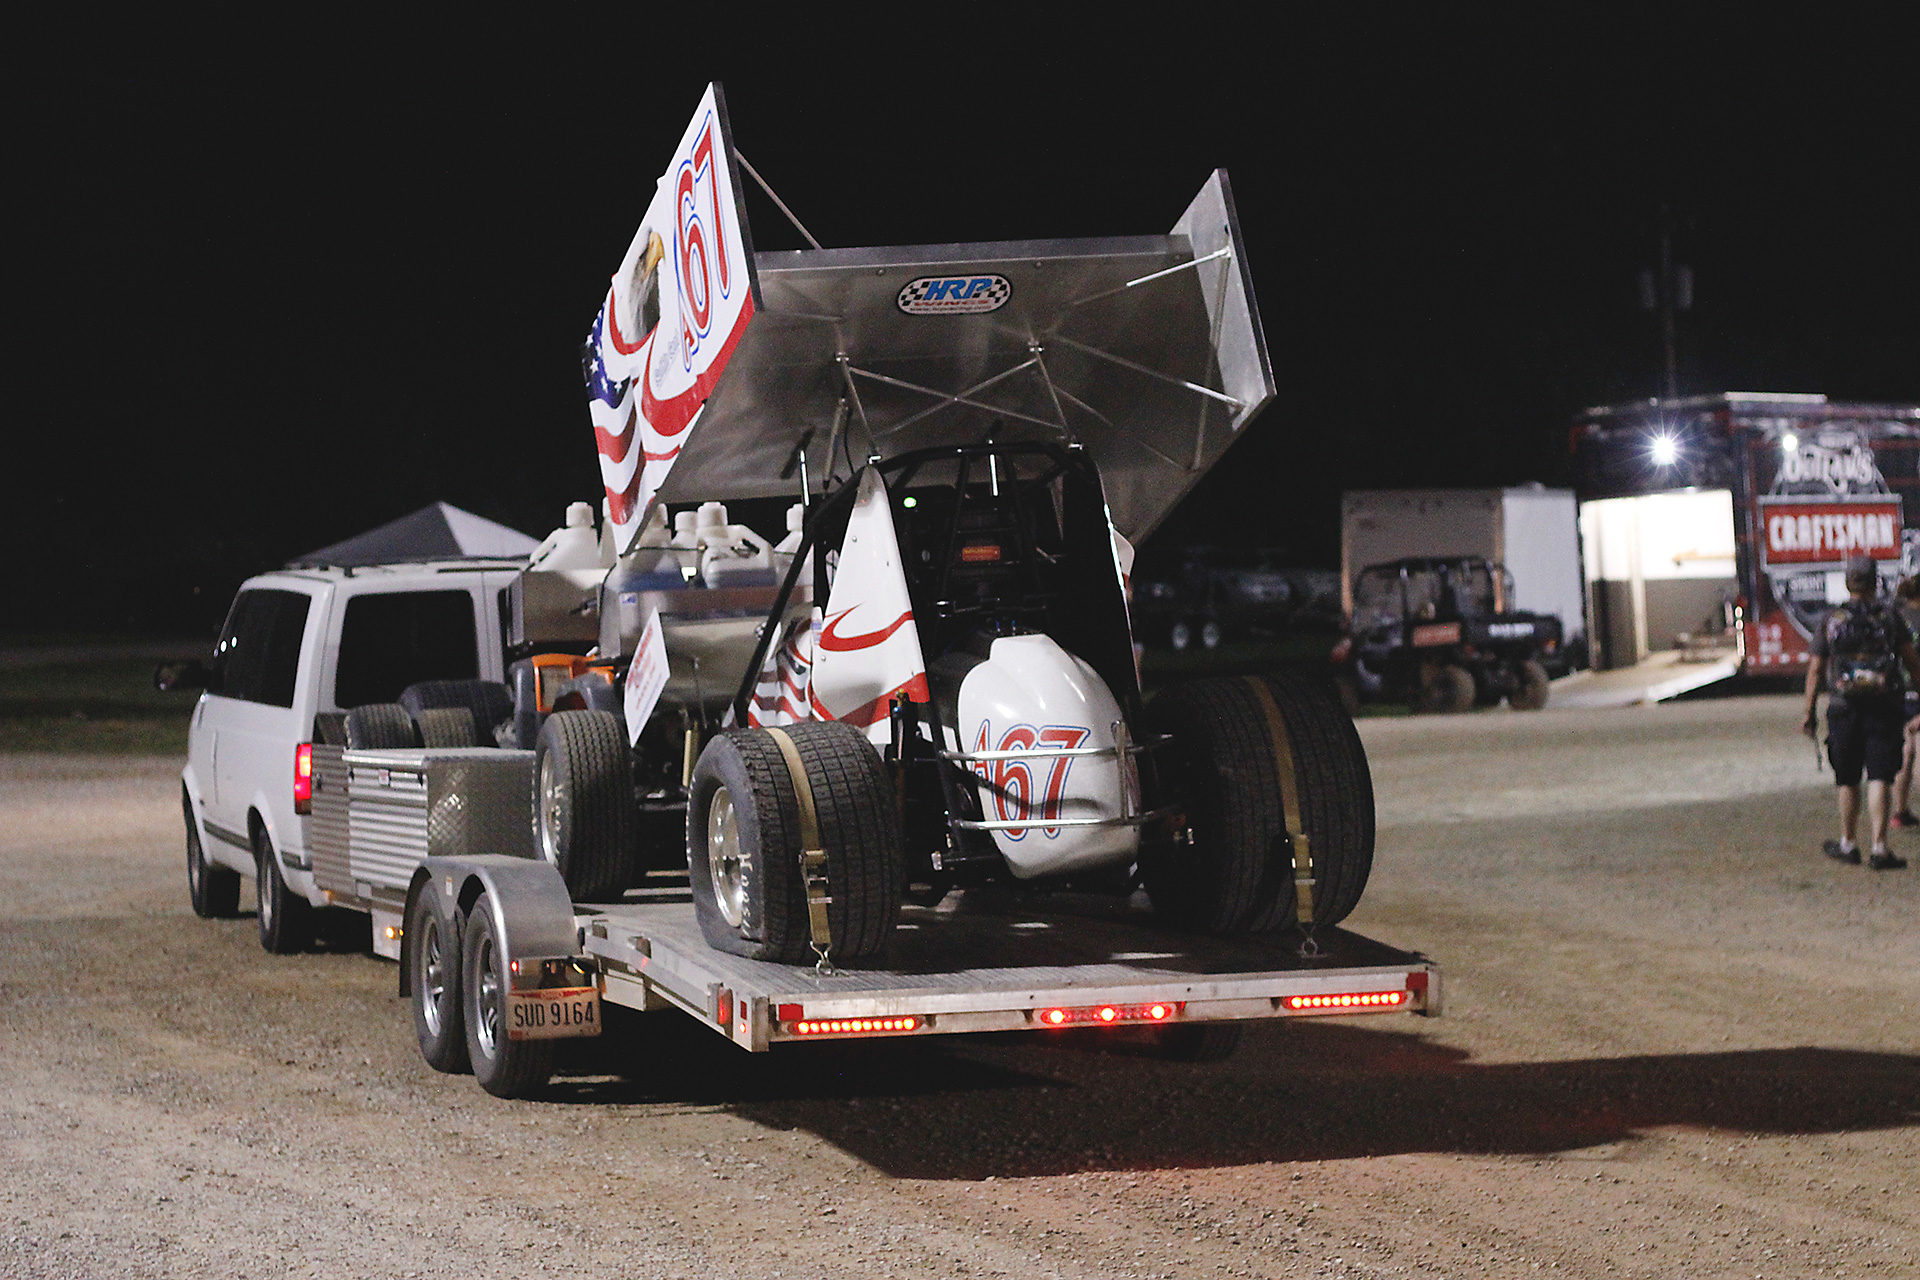 Brandon Wimmer climbed his way from 19th to finish 12th in The World of Outlaws A Feature at Lawrenceburg. ( Jeffrey Turford / TDP )